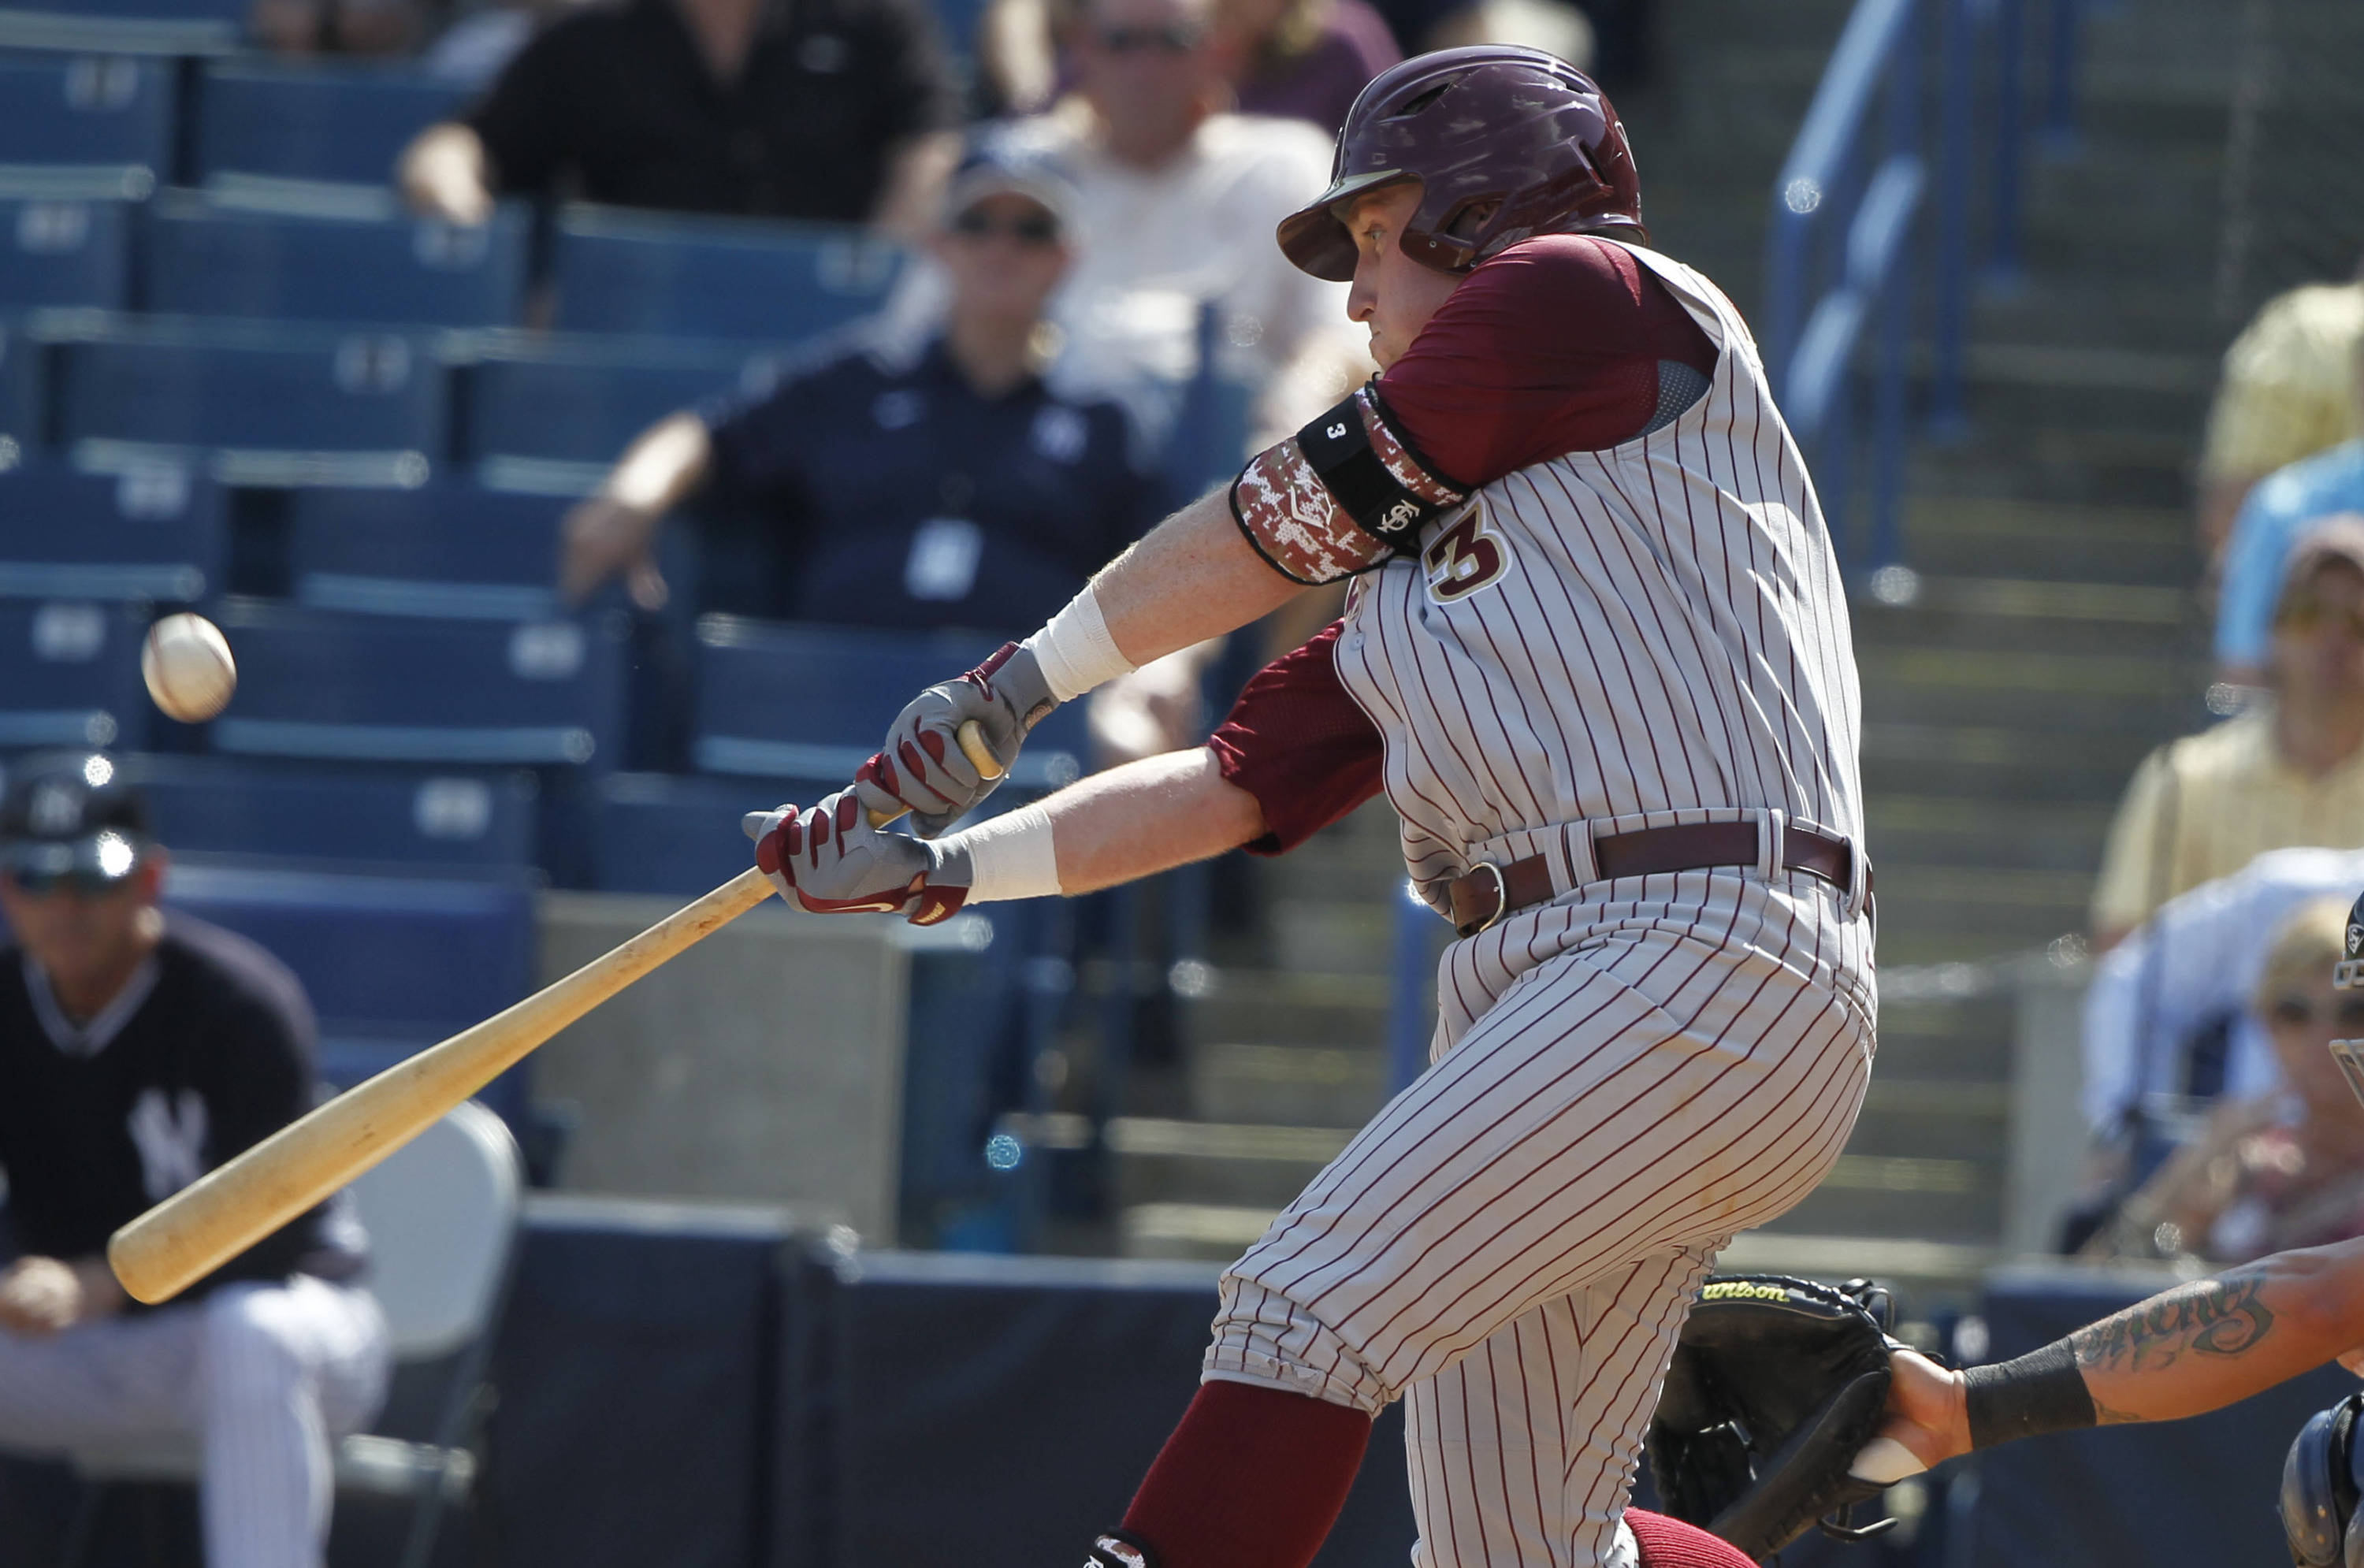 Feb 25, 2014; Tampa, FL, USA; Florida State Seminoles first baseman John Nogowski (3) hits against the New York Yankees during the fourth inning at George M. Steinbrenner Field. Mandatory Credit: Kim Klement-USA TODAY Sports